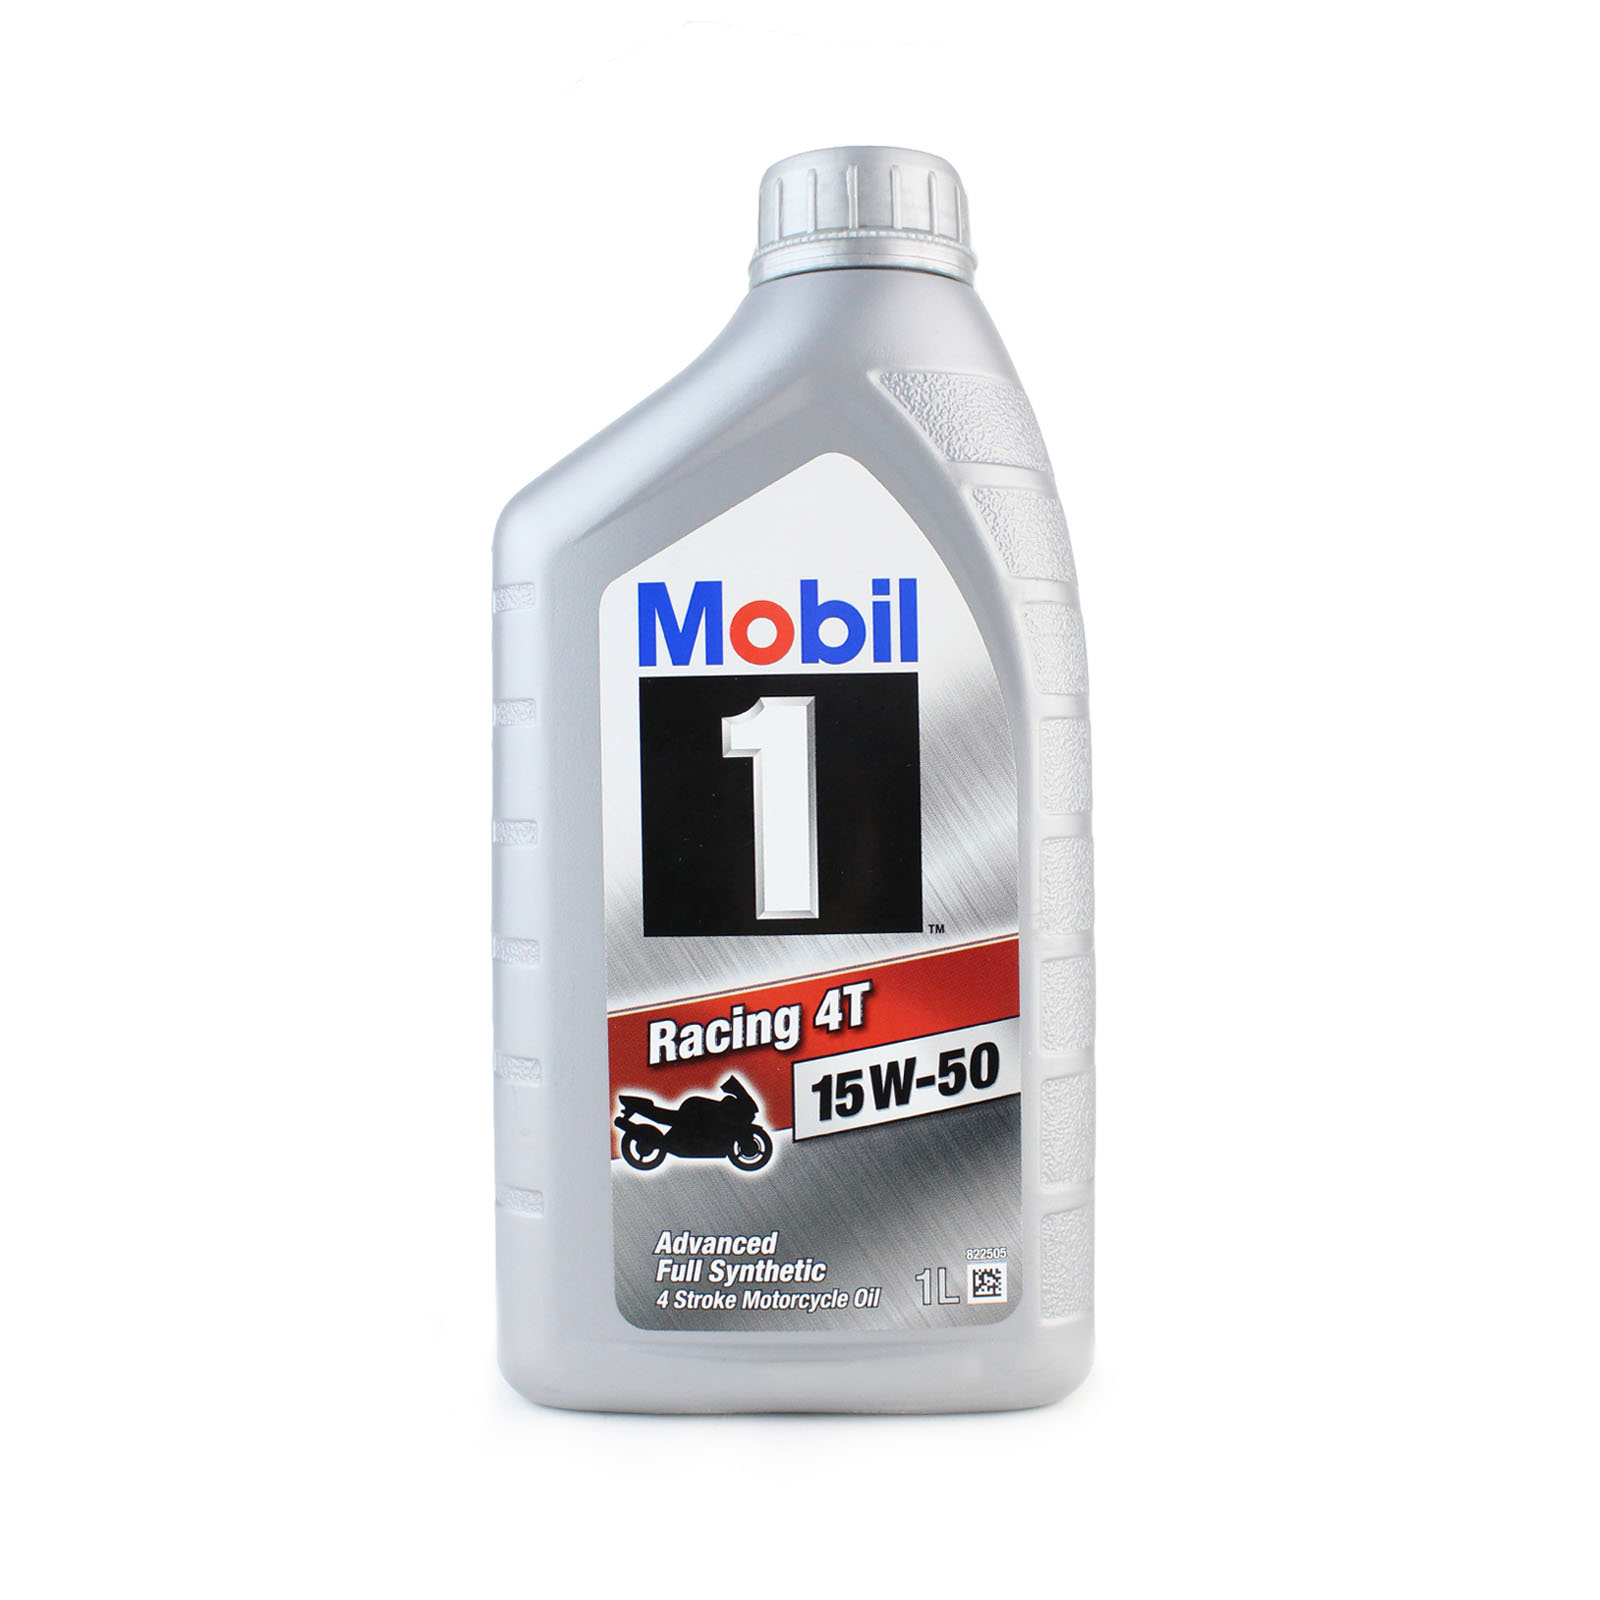 1 Litre Mobil 1 Racing 4t 15w50 4 Stroke Fully Synthetic